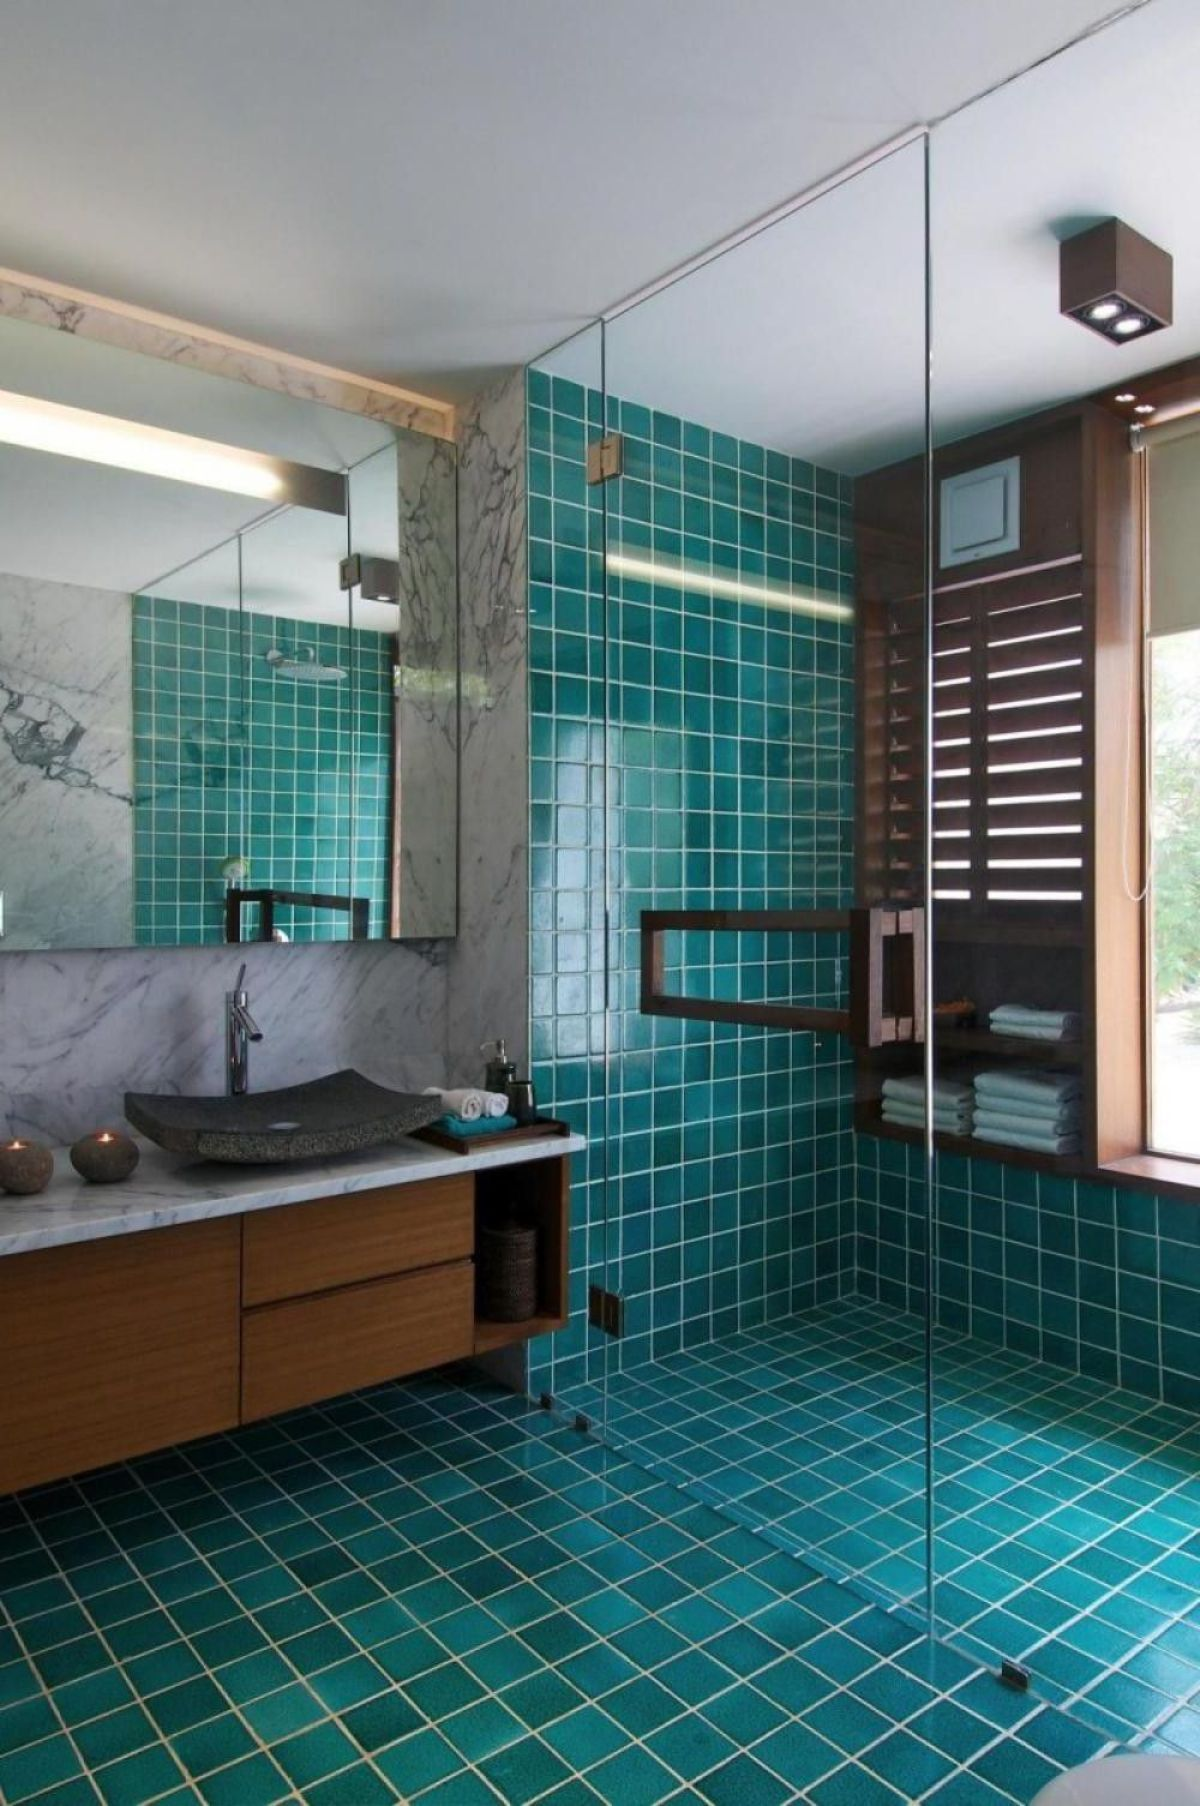 Turquoise Bathrooms: Timeless and Captivating Interior | Turquoise ...